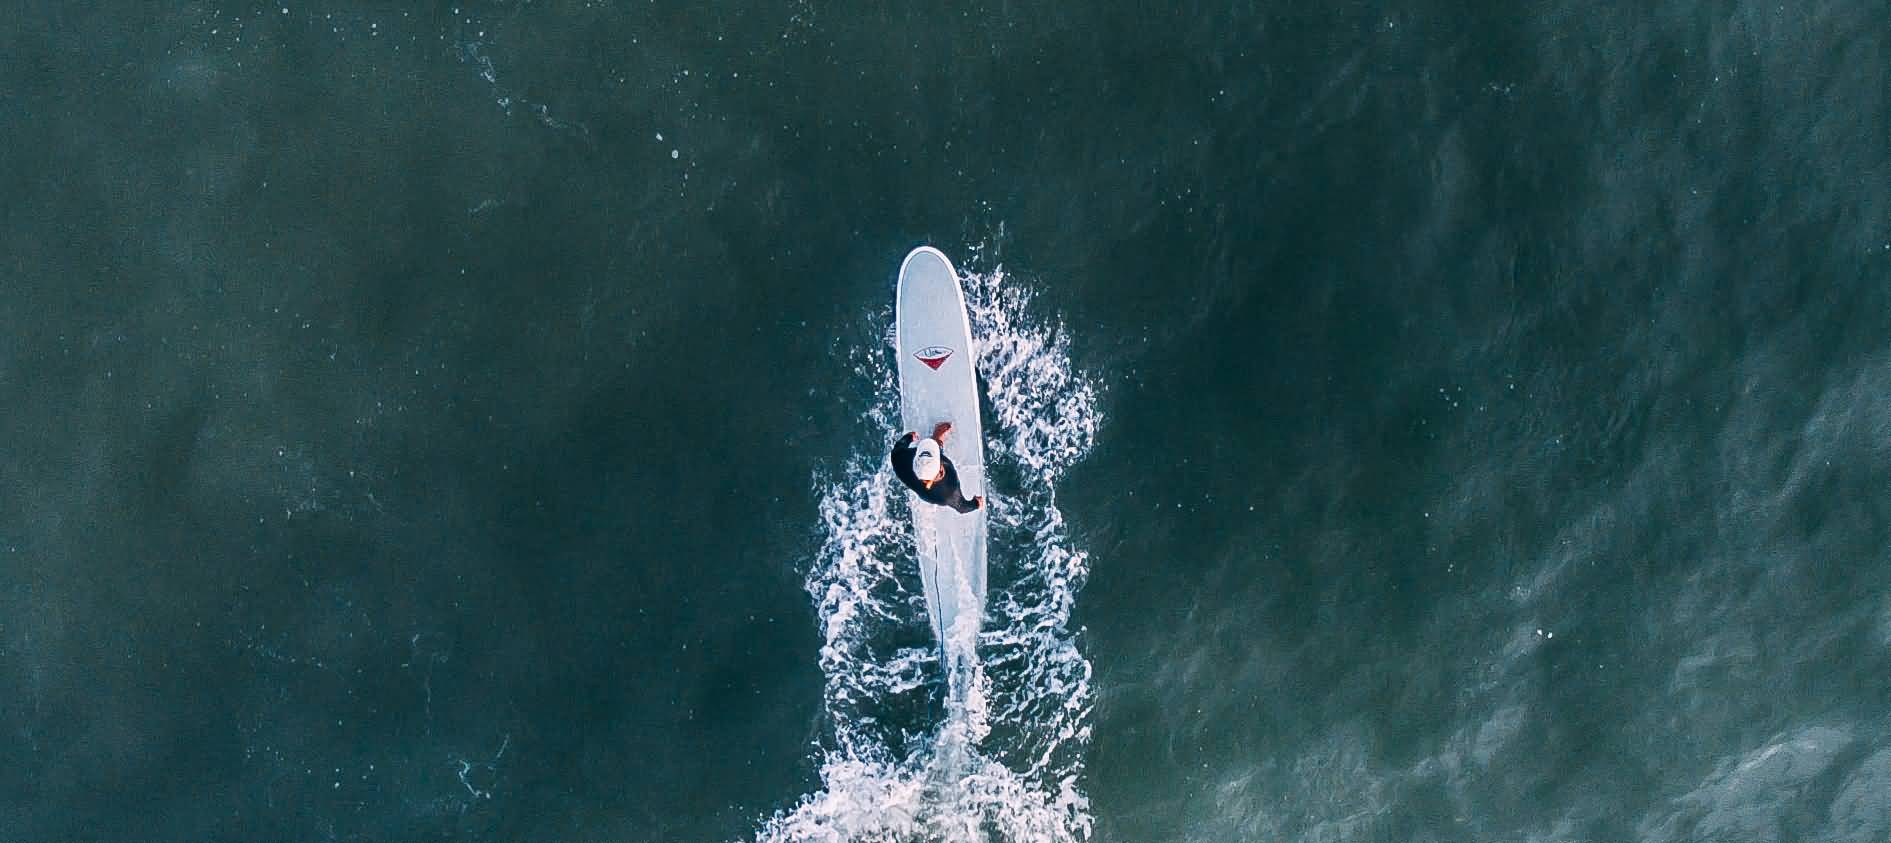 Aerial View Of Man Surfing